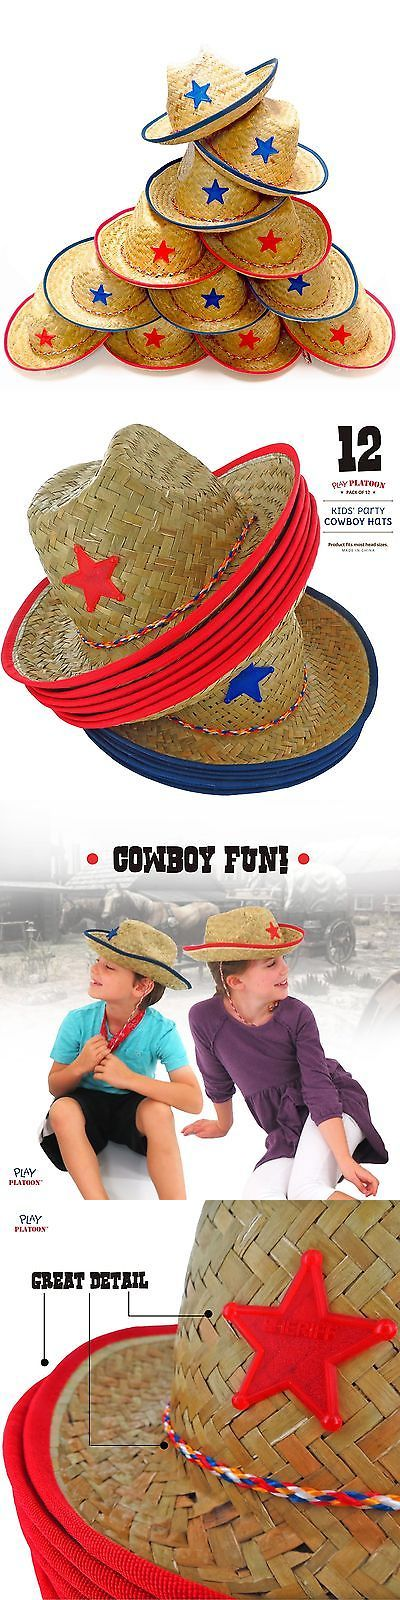 Attire 116101: Dozen Straw Cowboy Hats For Kids - Makes Great Birthday Party Hats For Boys A... -> BUY IT NOW ONLY: $300 on eBay!